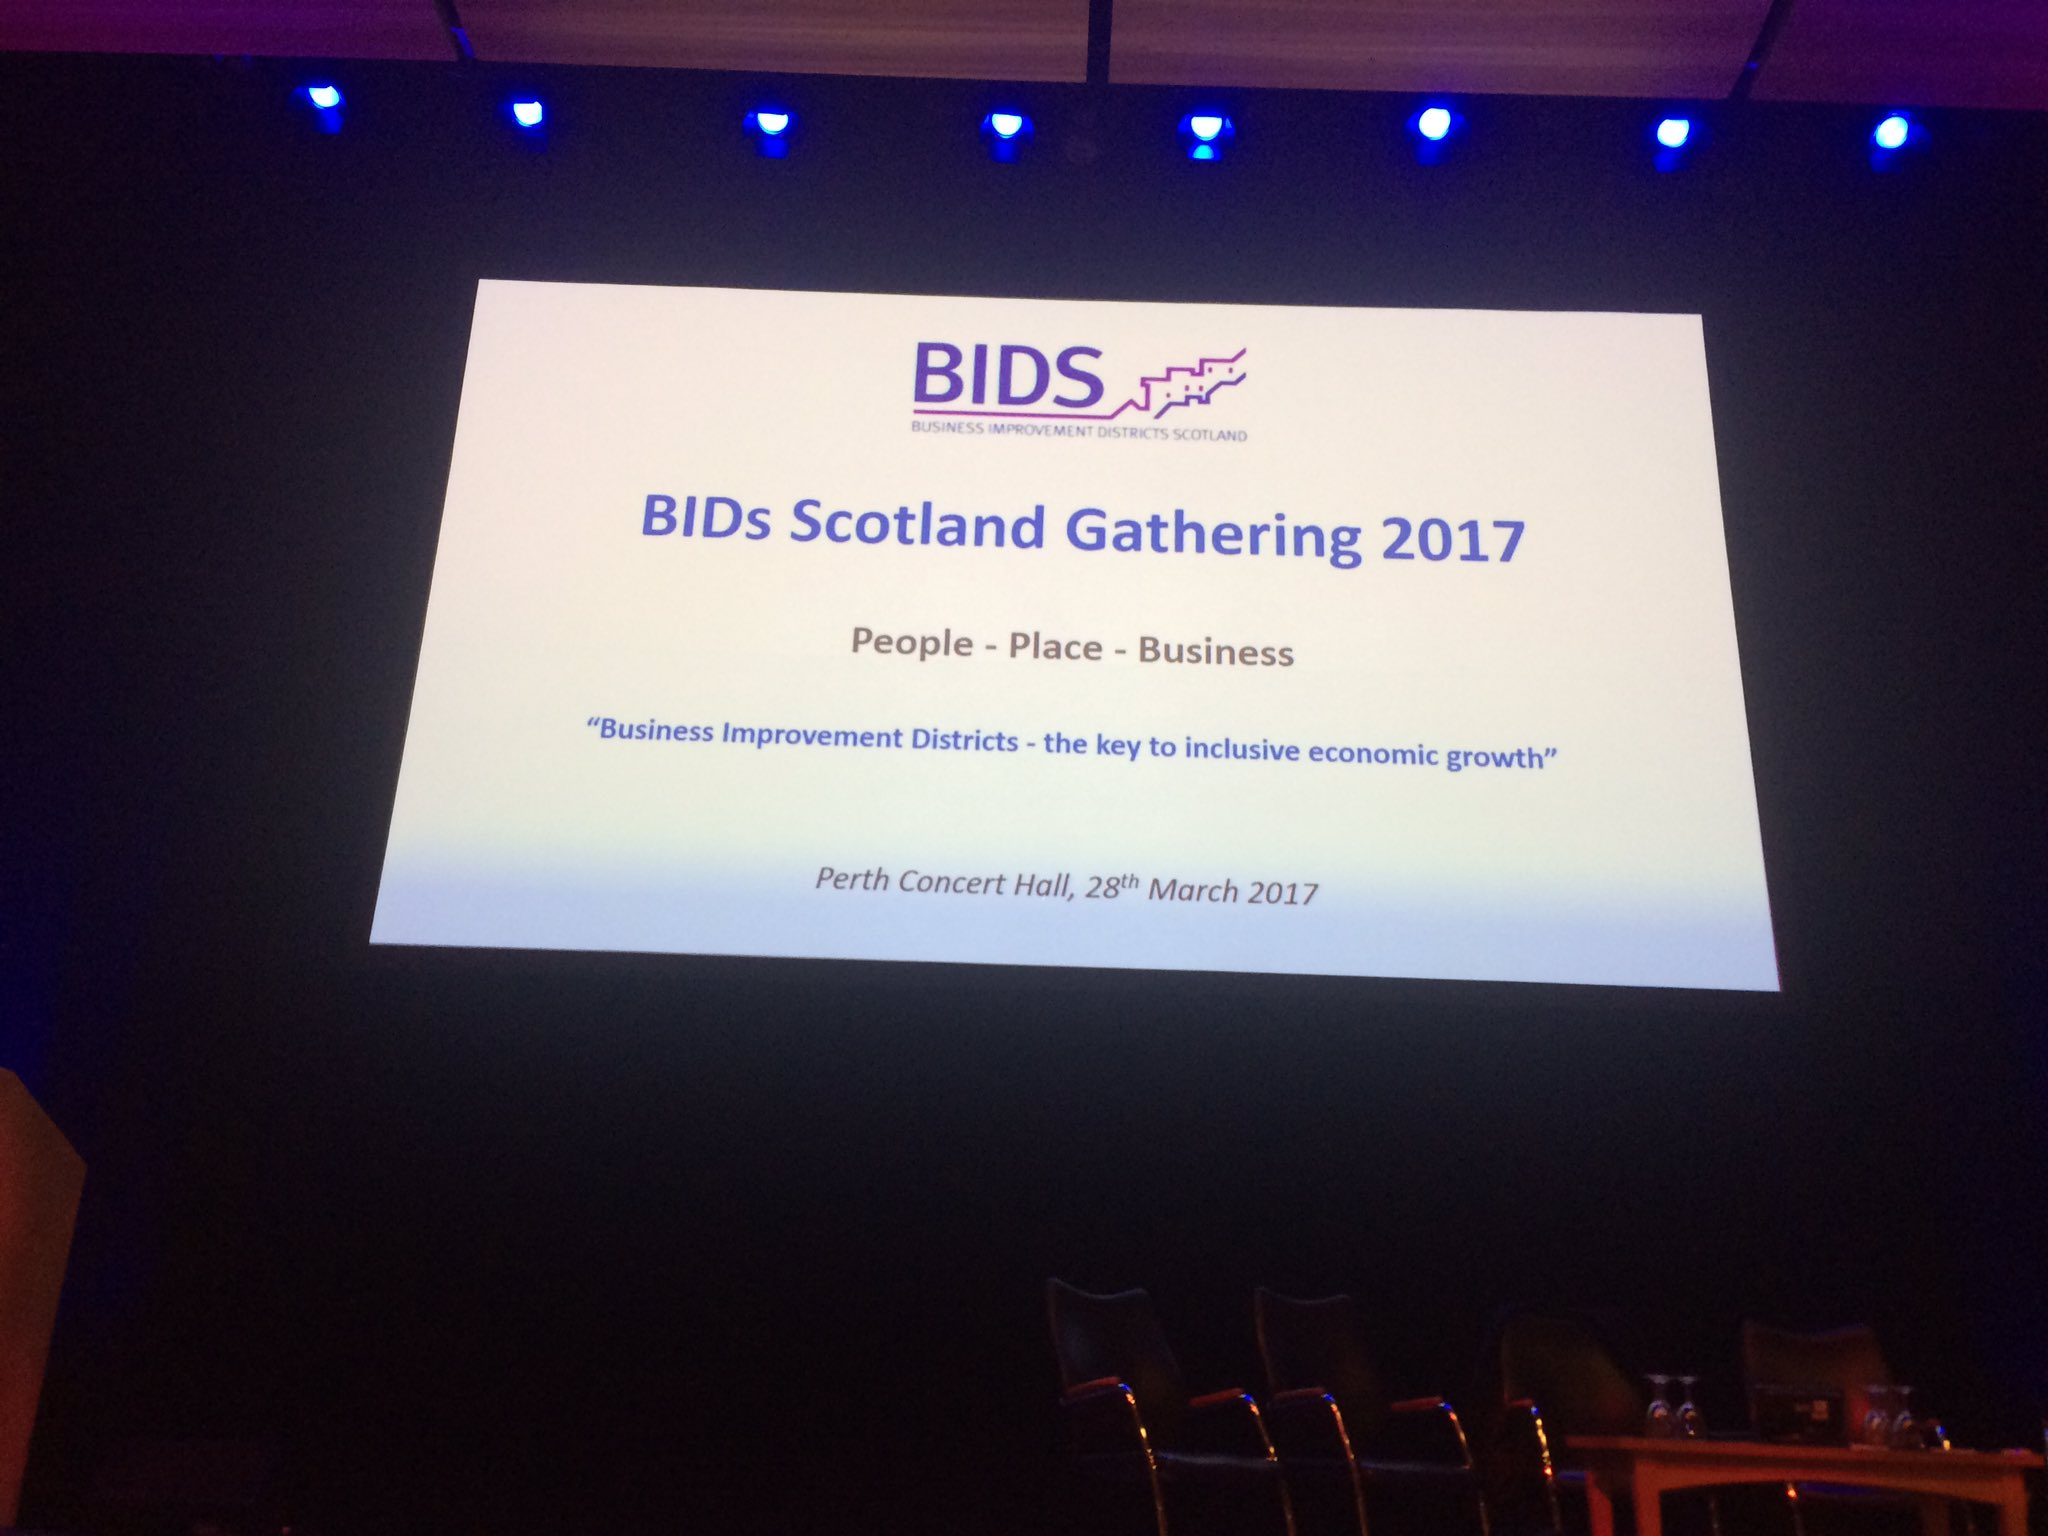 #BIDSGathering People - Place - Business: The key to inclusive economic growth #Perth https://t.co/A6WQRLidT6